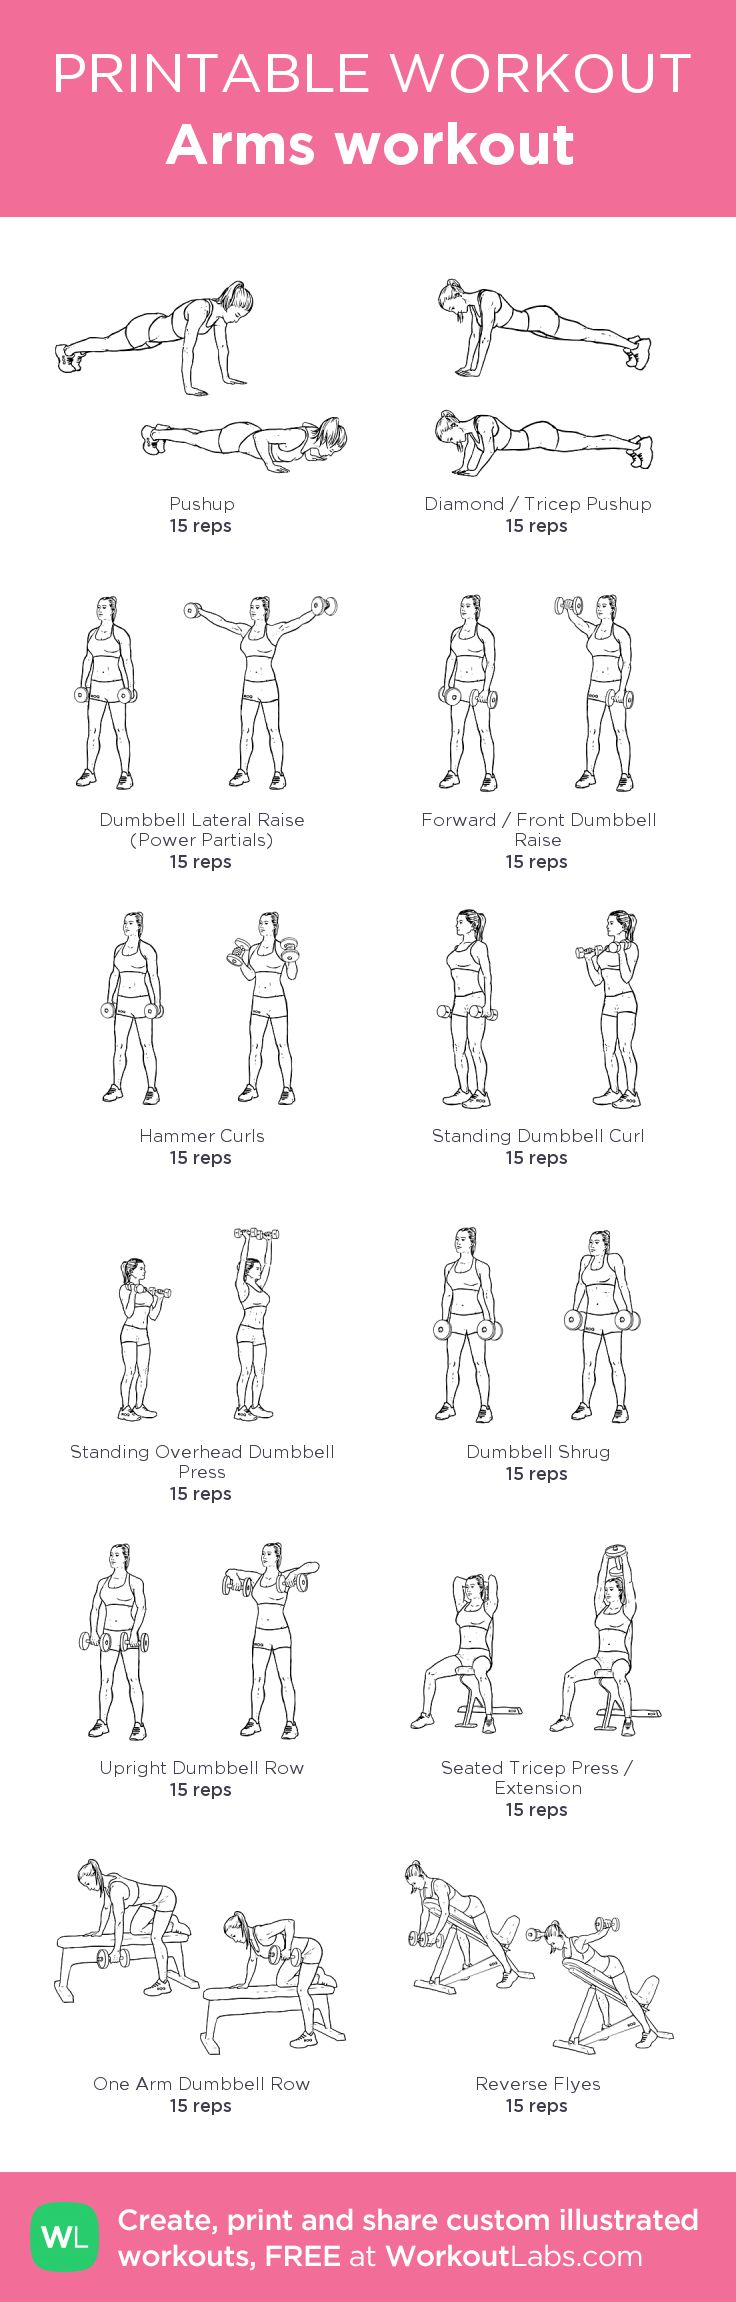 Arms workout: my custom printable workout by @WorkoutLabs #workoutlabs #customworkout